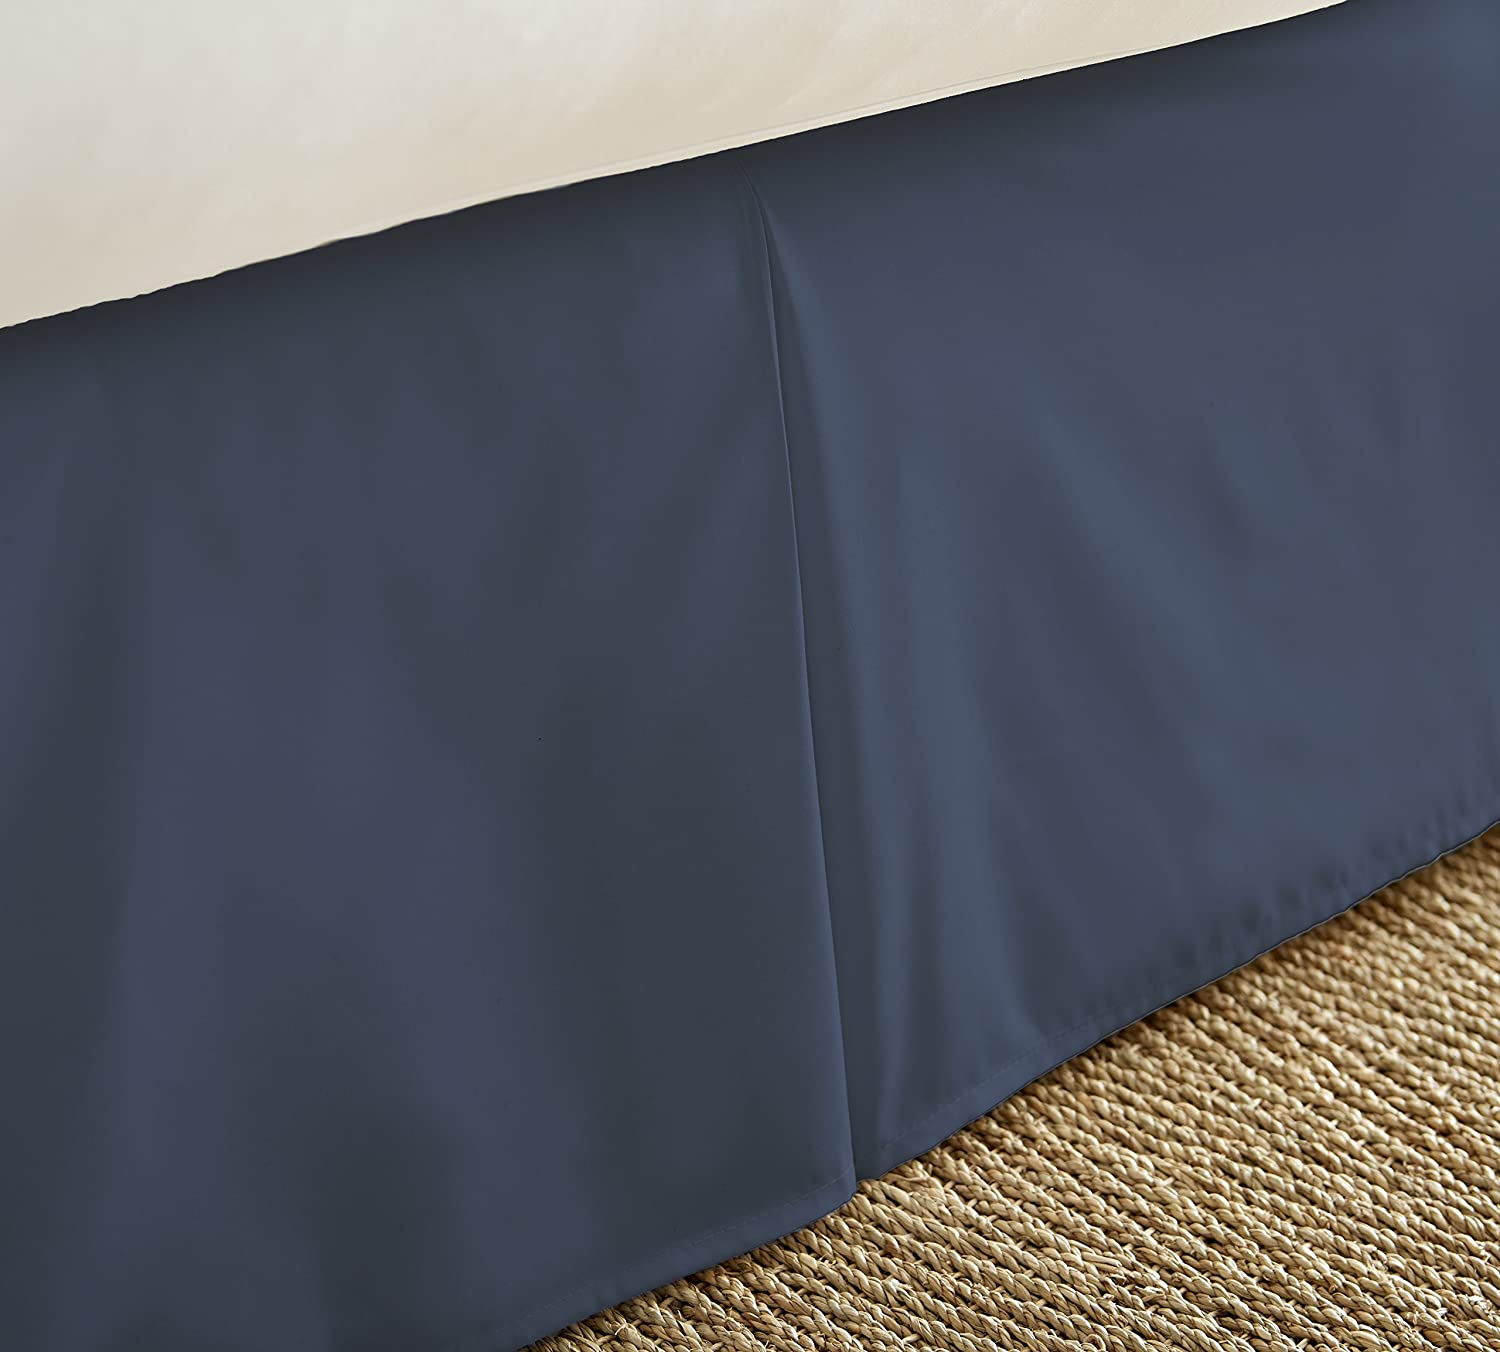 X-Large Twin XL BECKY CAMERON Bedskirt ienjoy Home Luxury Pleated Dust Ruffle Bed Skirt Black